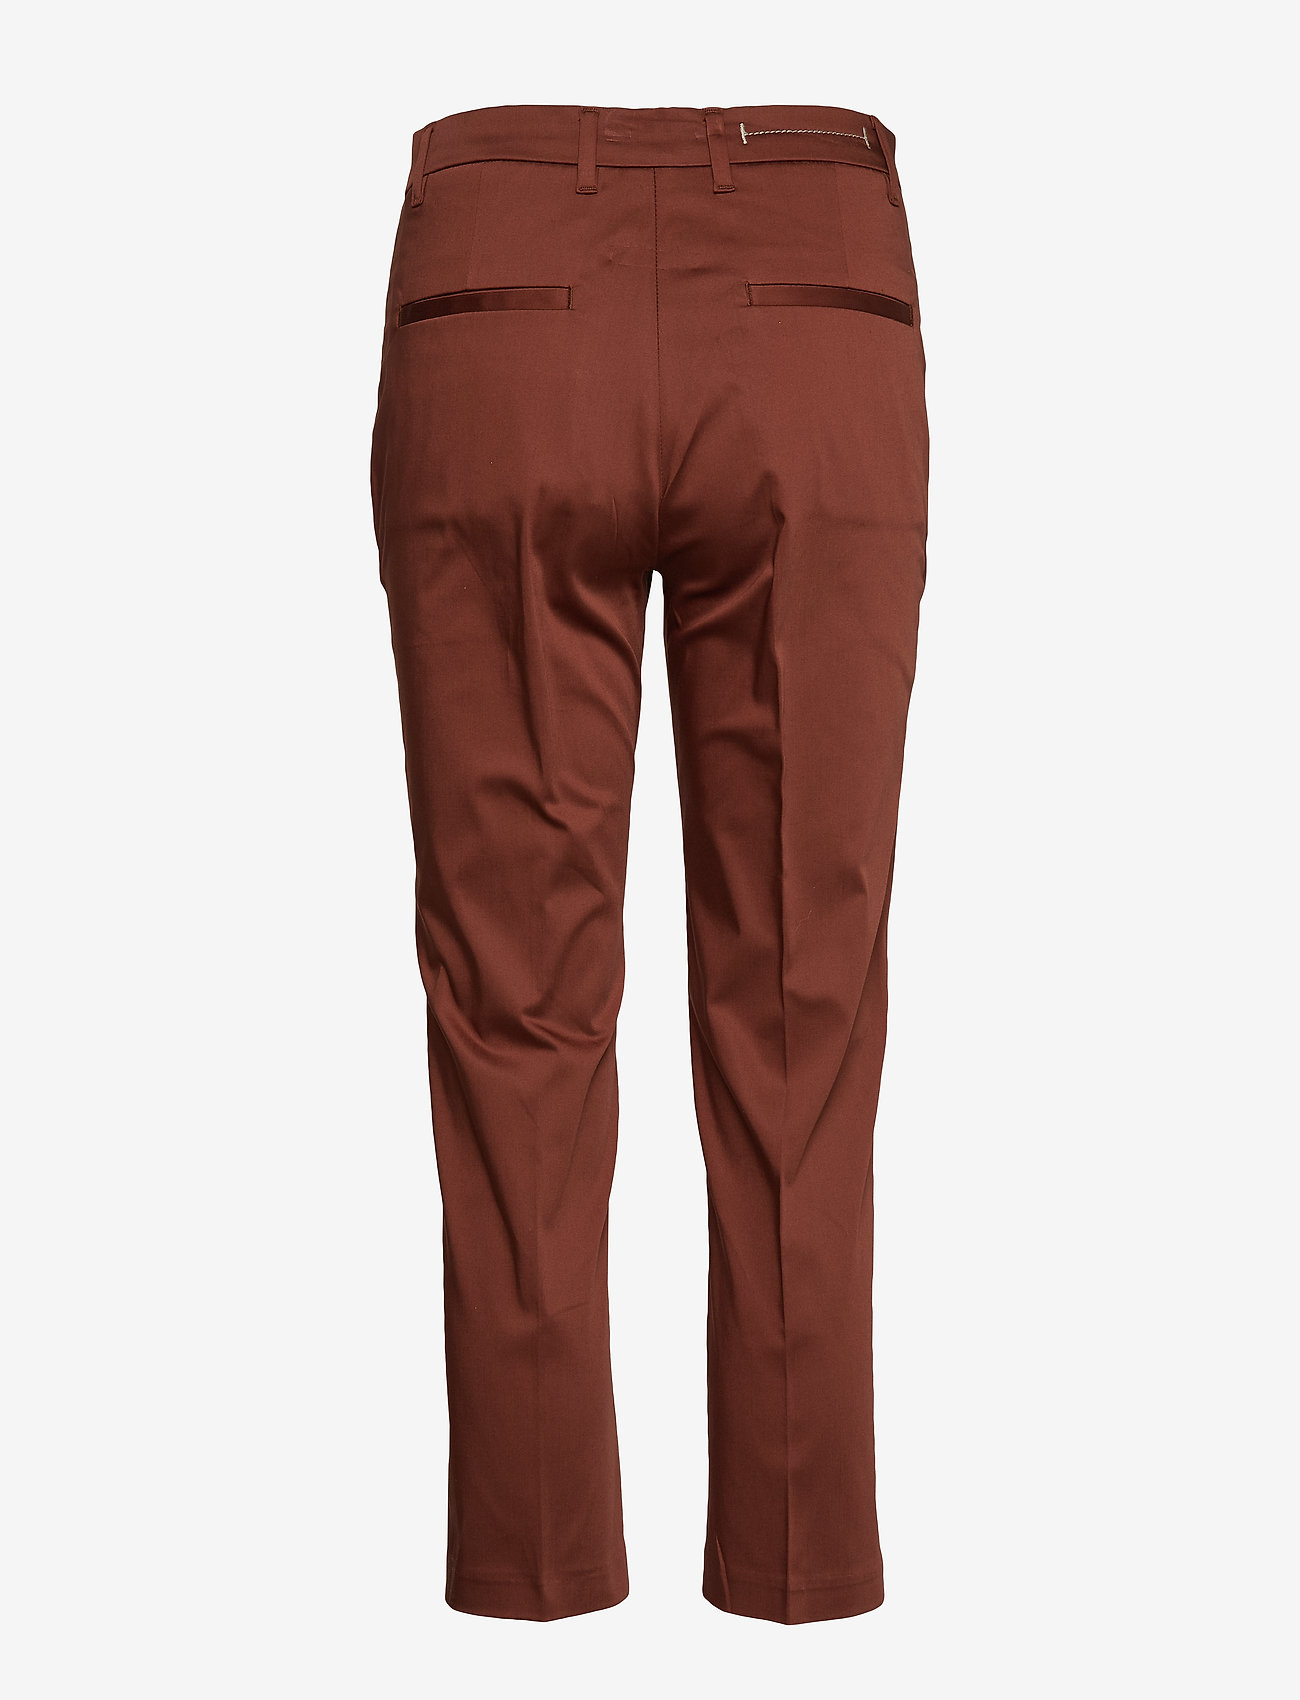 Lobby Trousers (Golden Brown) (660 kr) - Hope YxwMukLq